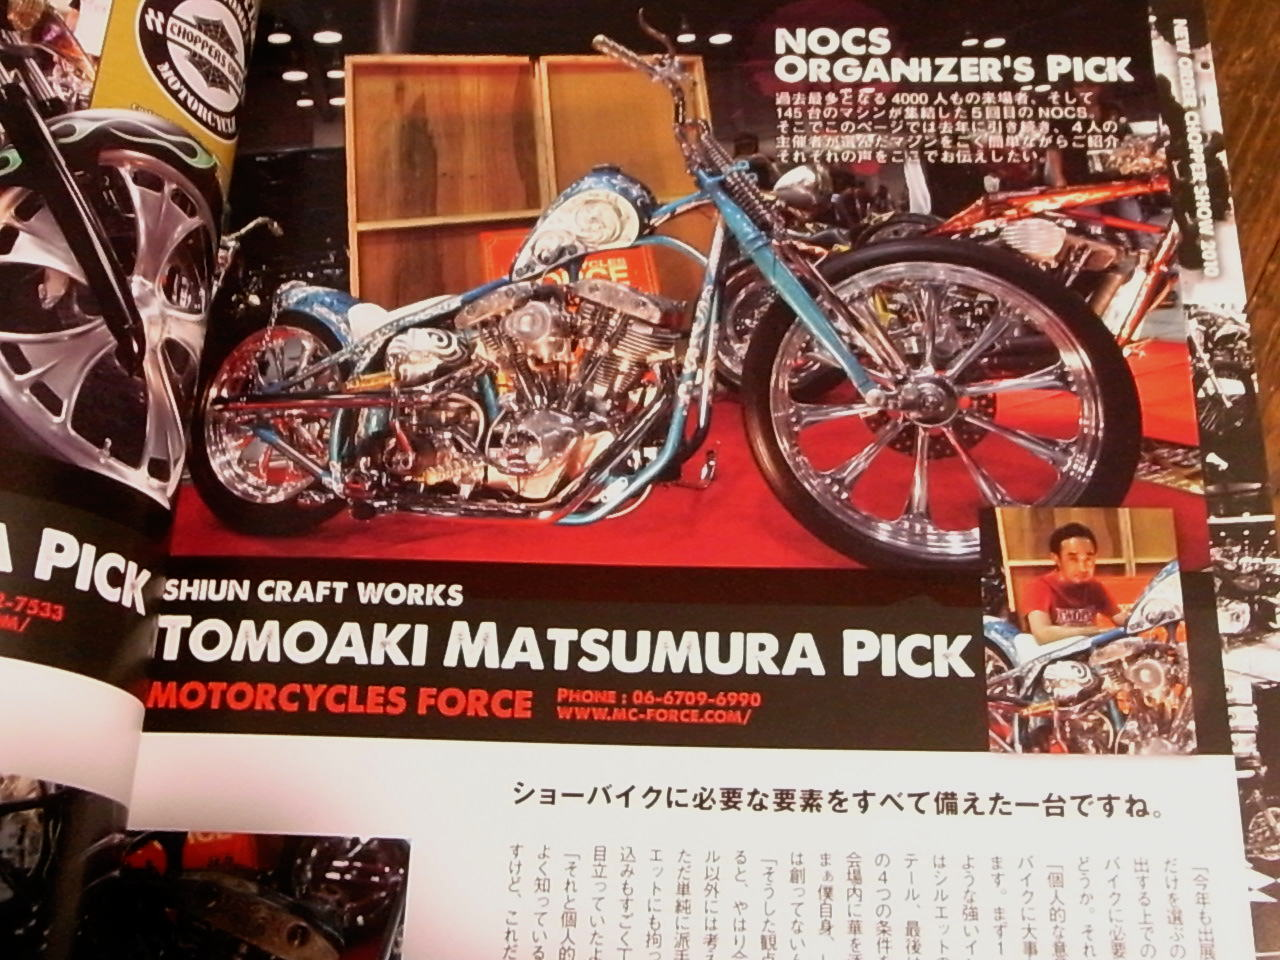 """ HARDCORE CHOPPER mag. \""_b0160319_22344925.jpg"